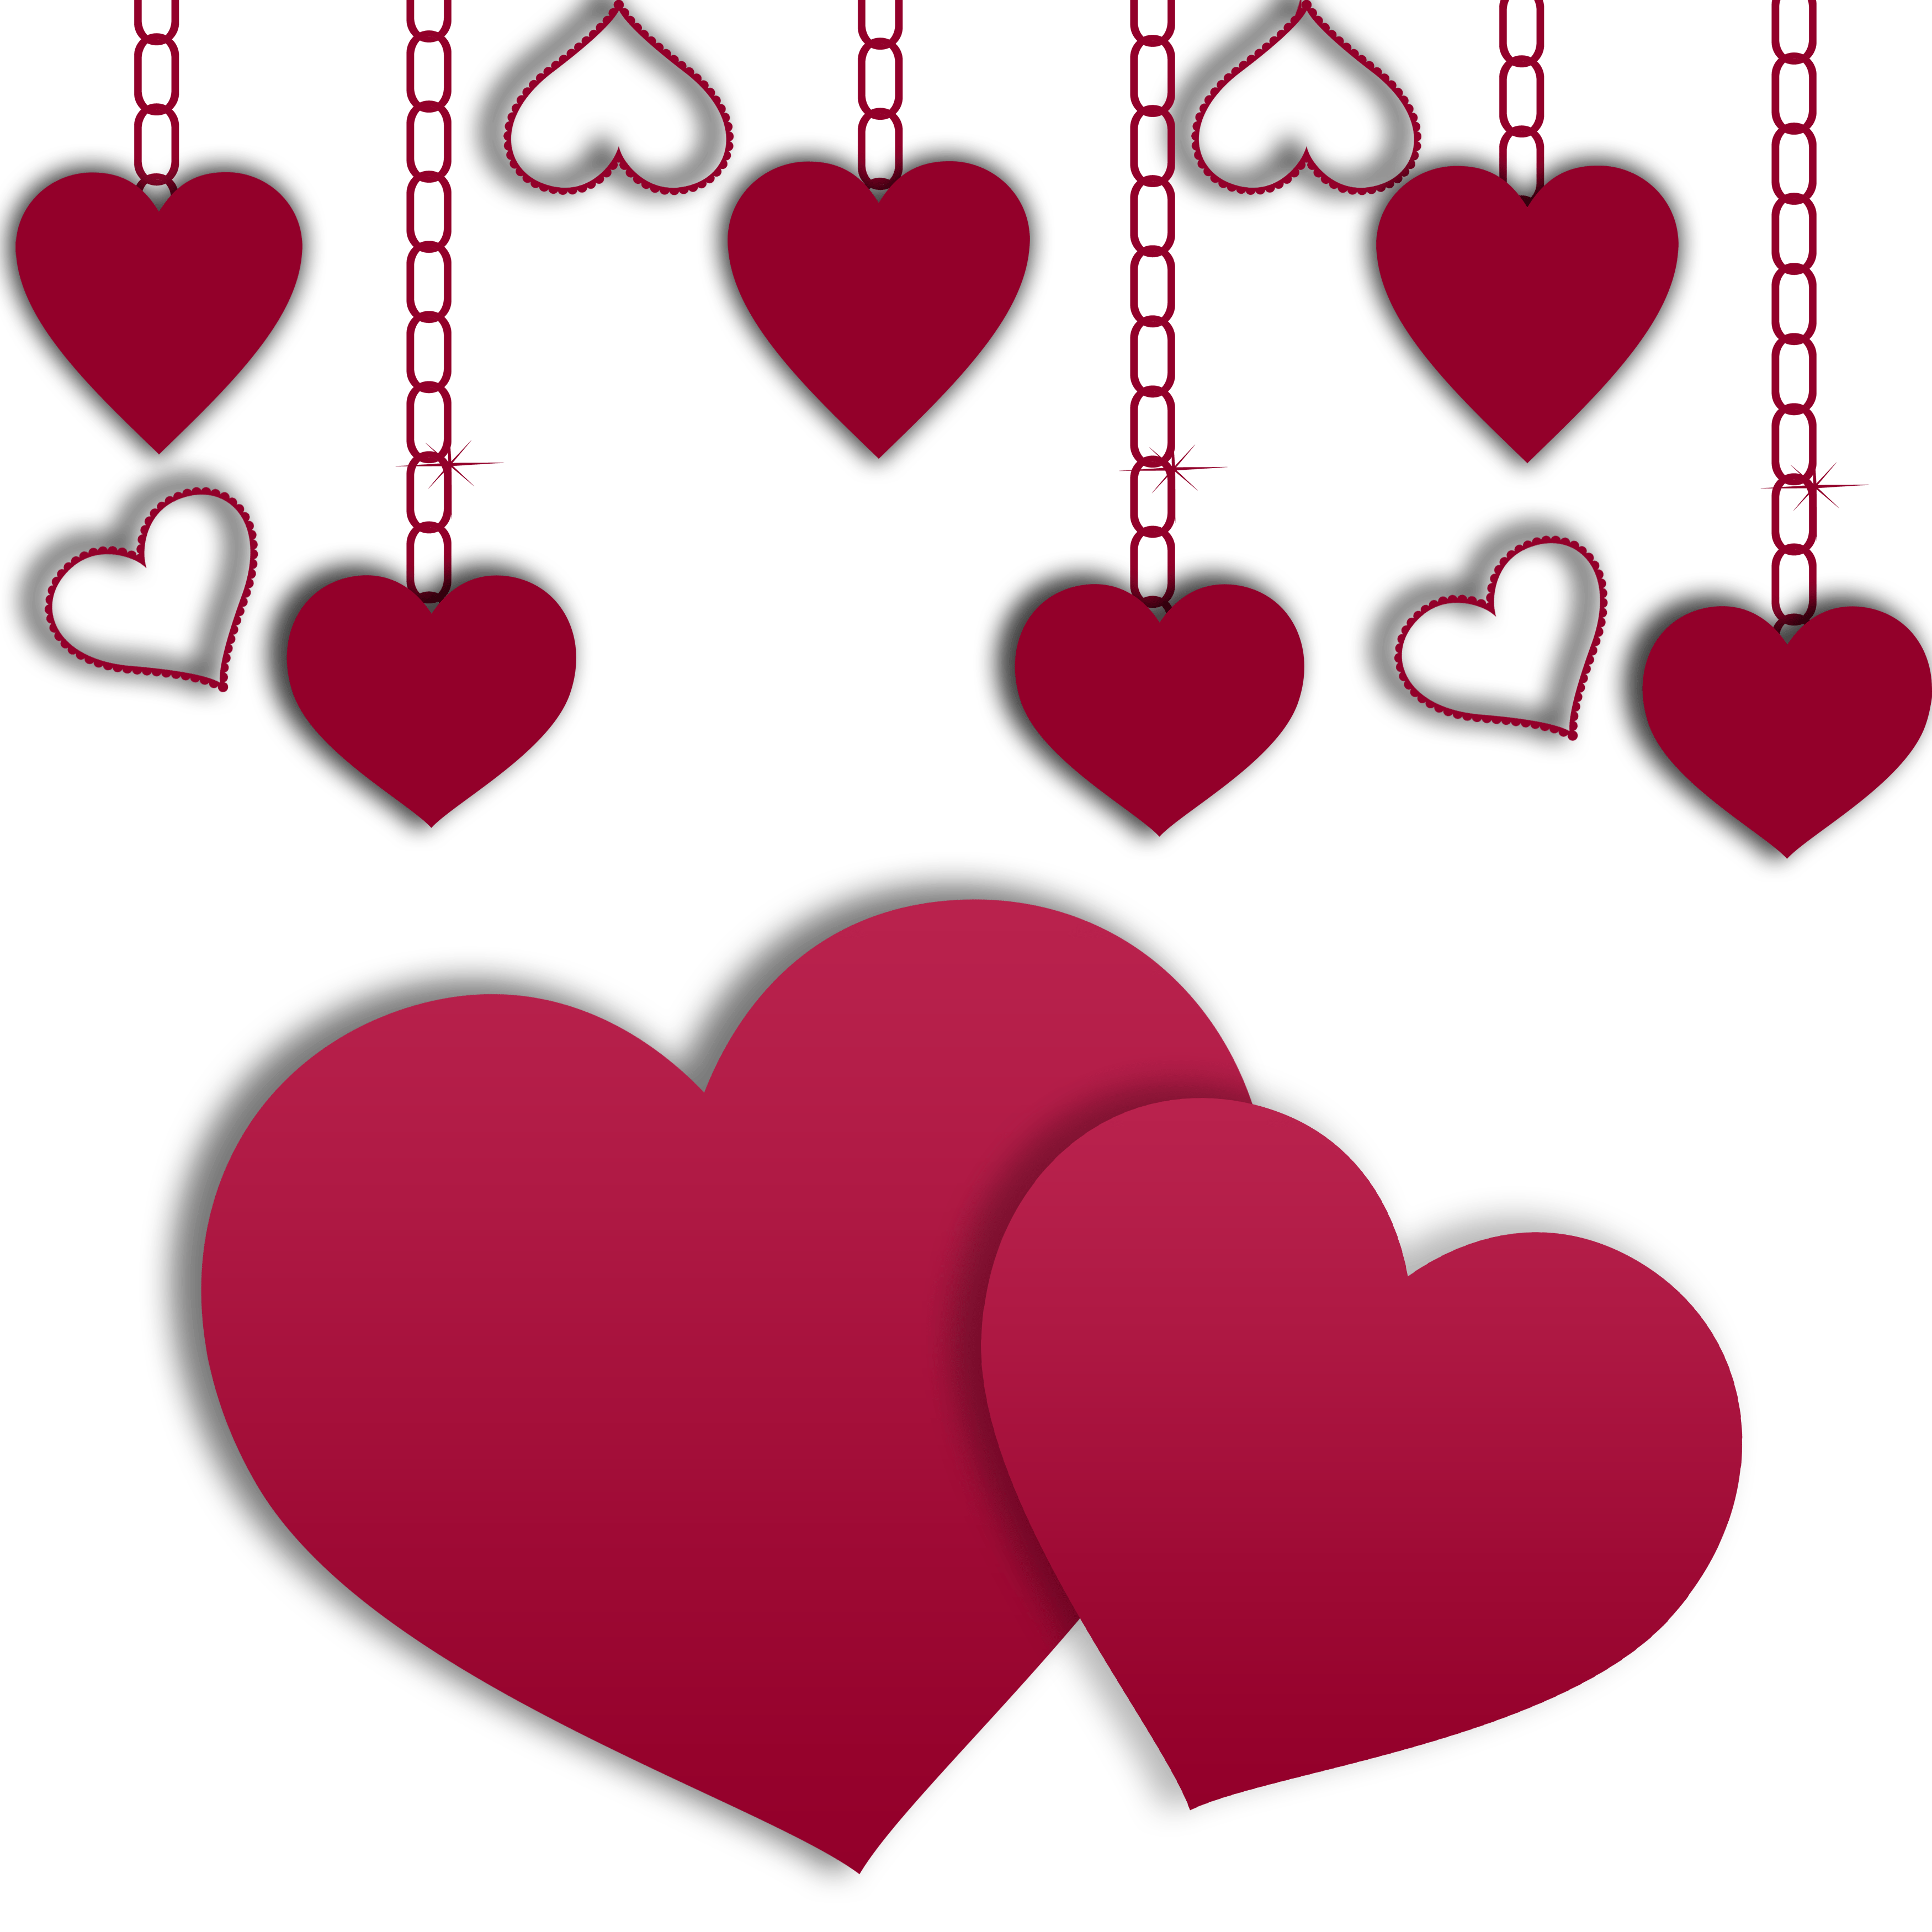 Creepy valentine png. Hearts illustration day download